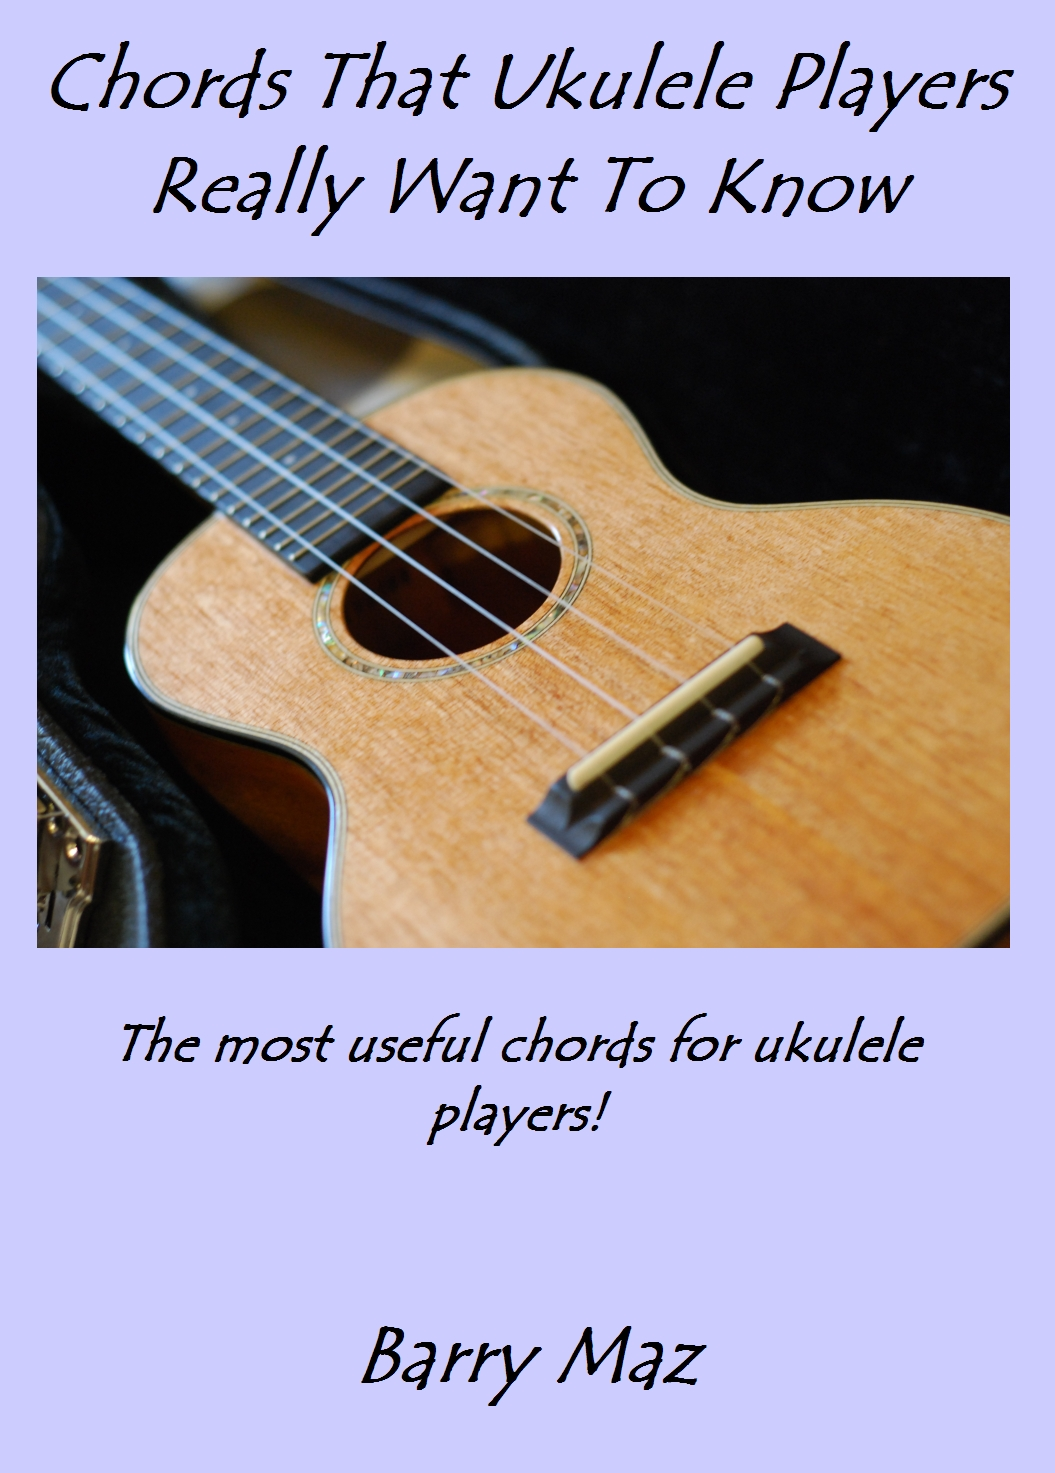 Chords for ukulele players - new ebook